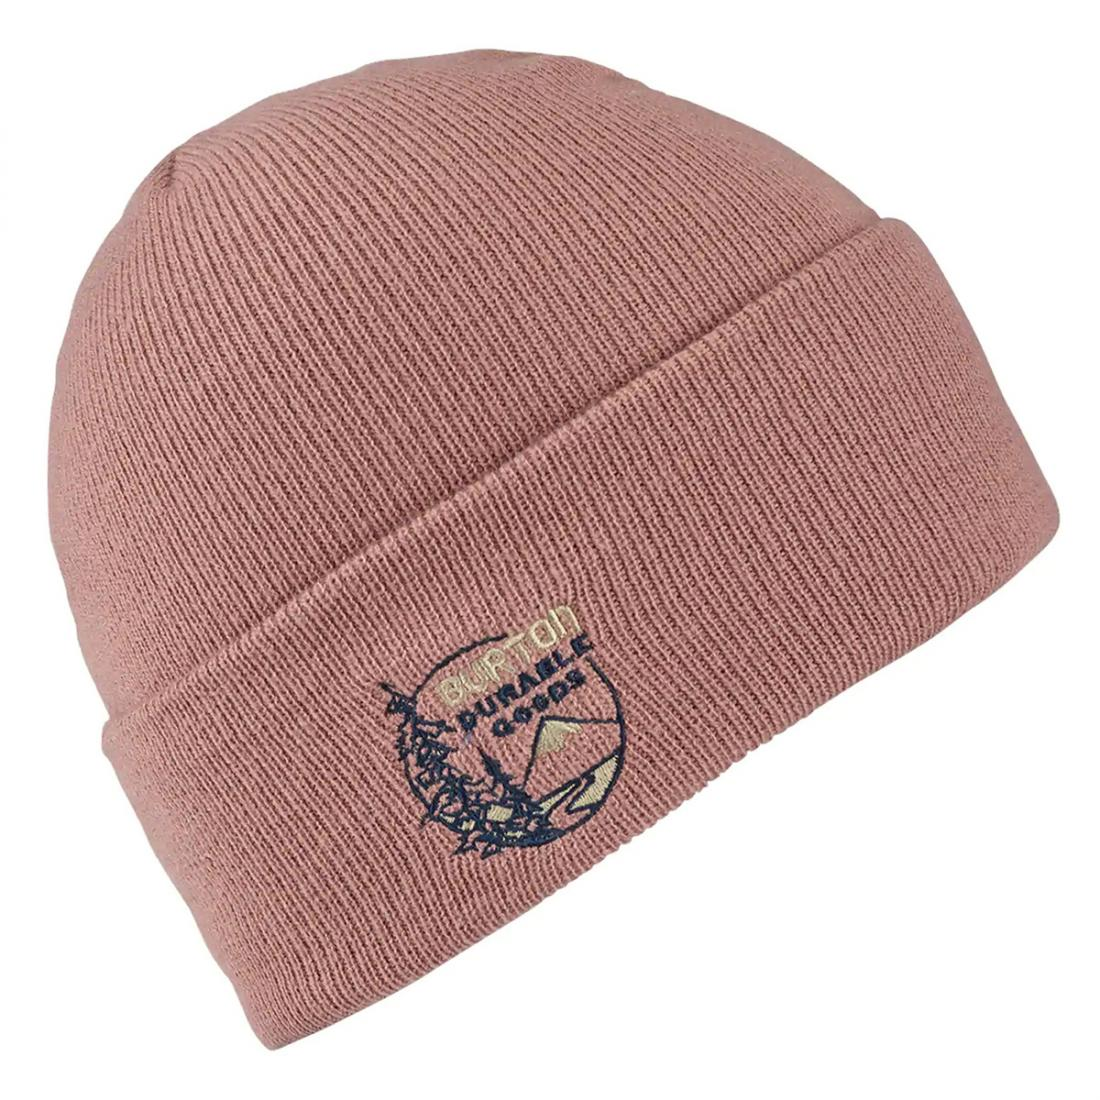 ШАПКА М ТРИК MNS WHATEVER BEANIE Розовая